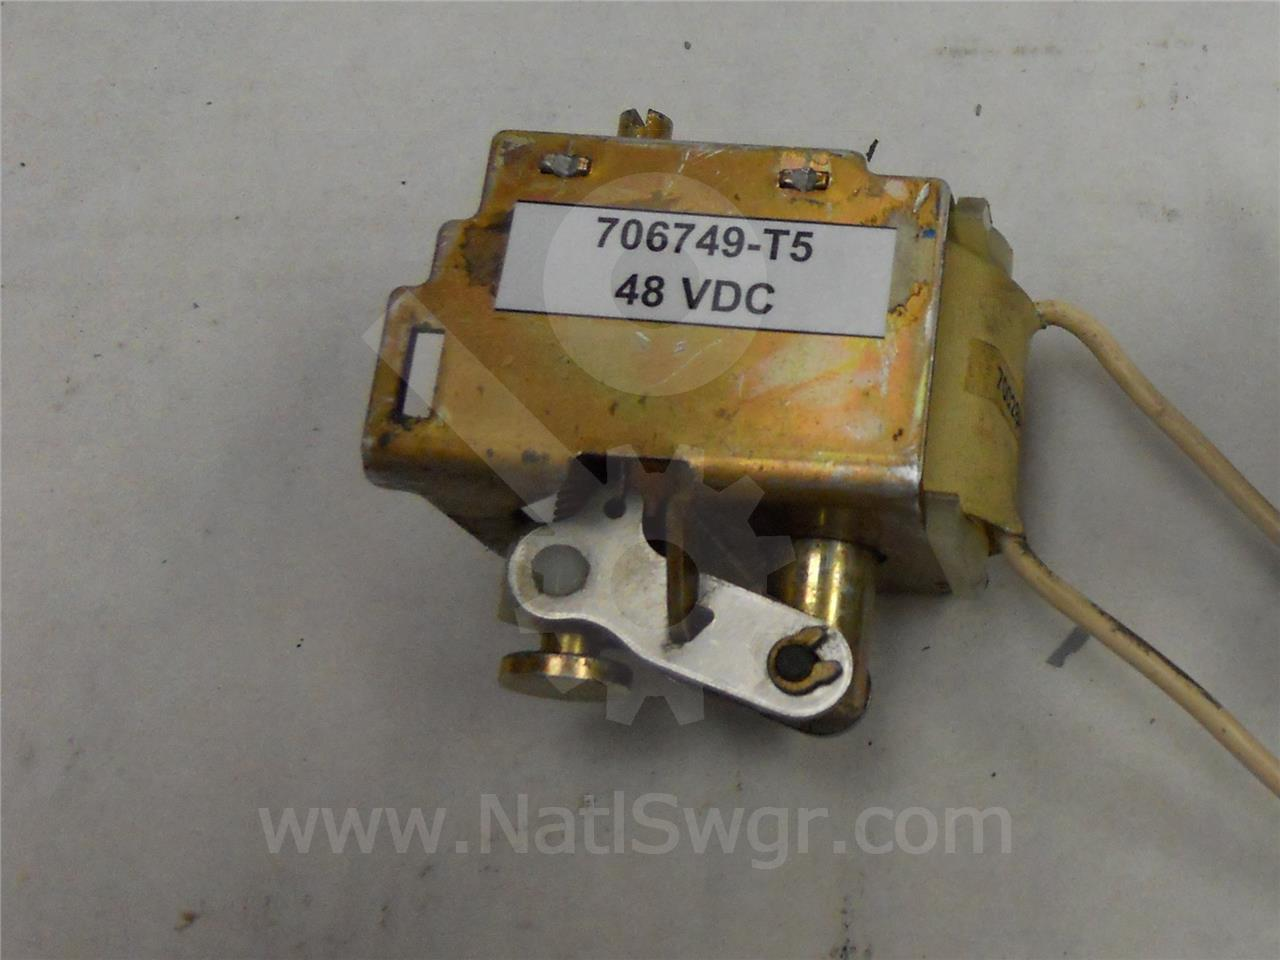 706749-T5 ITE 48VDC TRIP / CLOSE COIL ASSEMBLY FOR K-3000 / K-4000